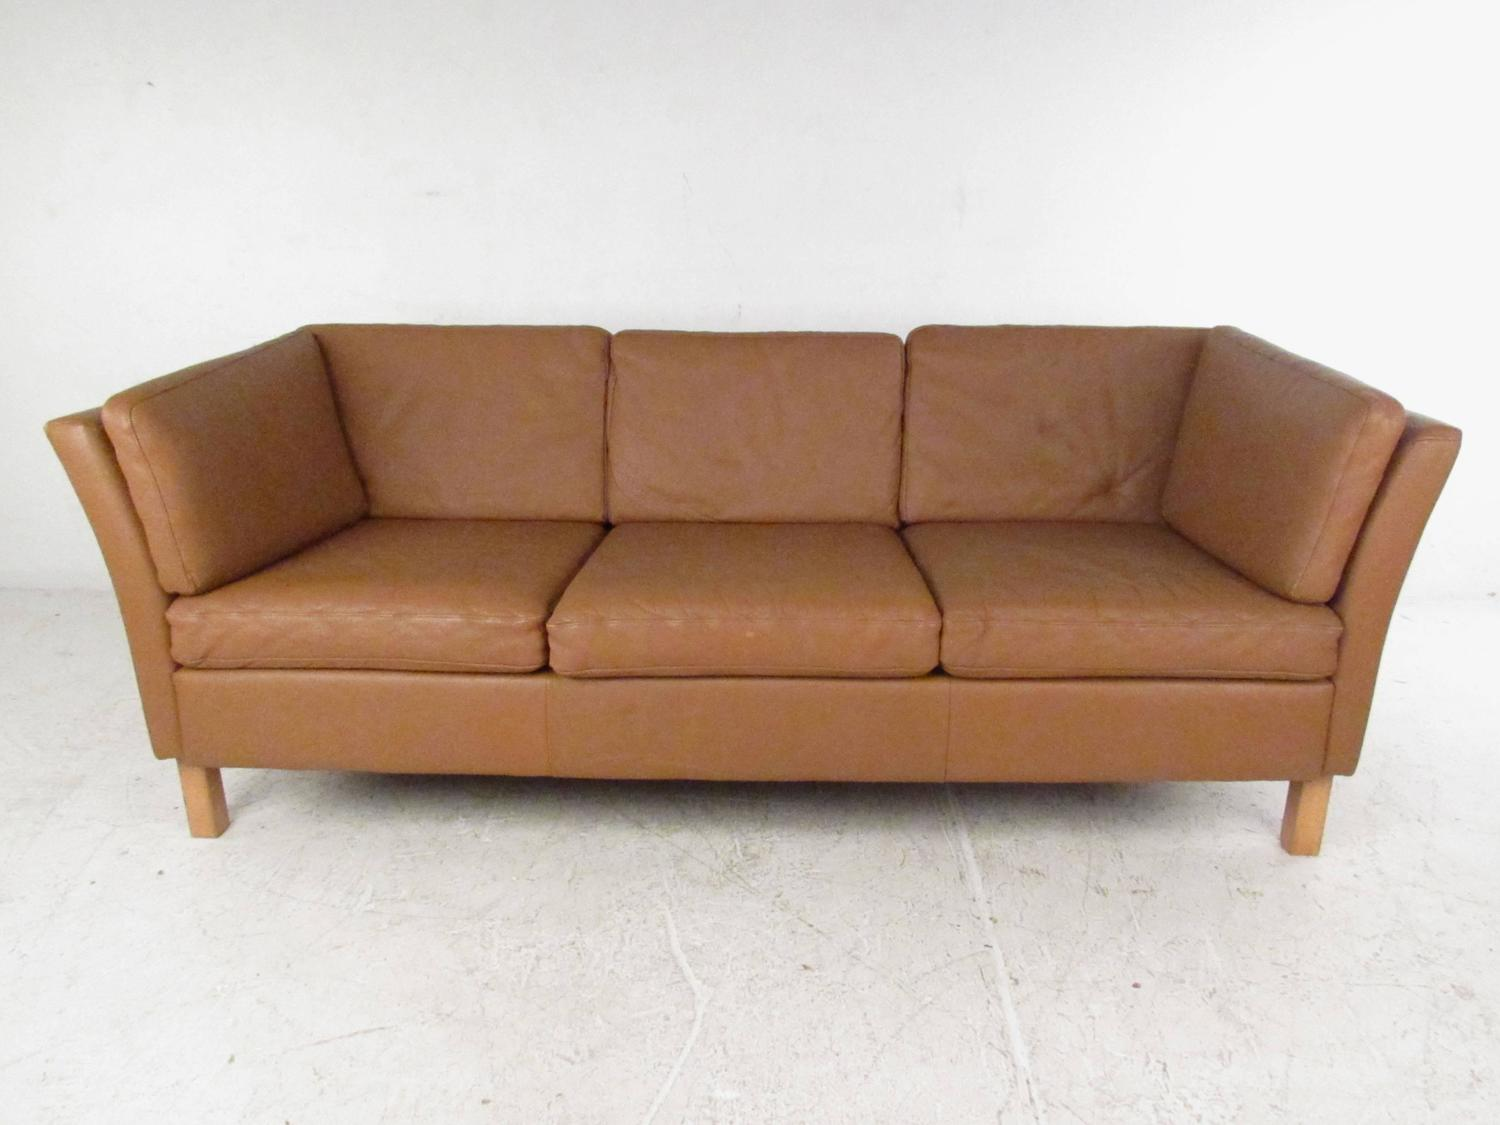 danish modern leather sofa mid century mogensen style couch for sale